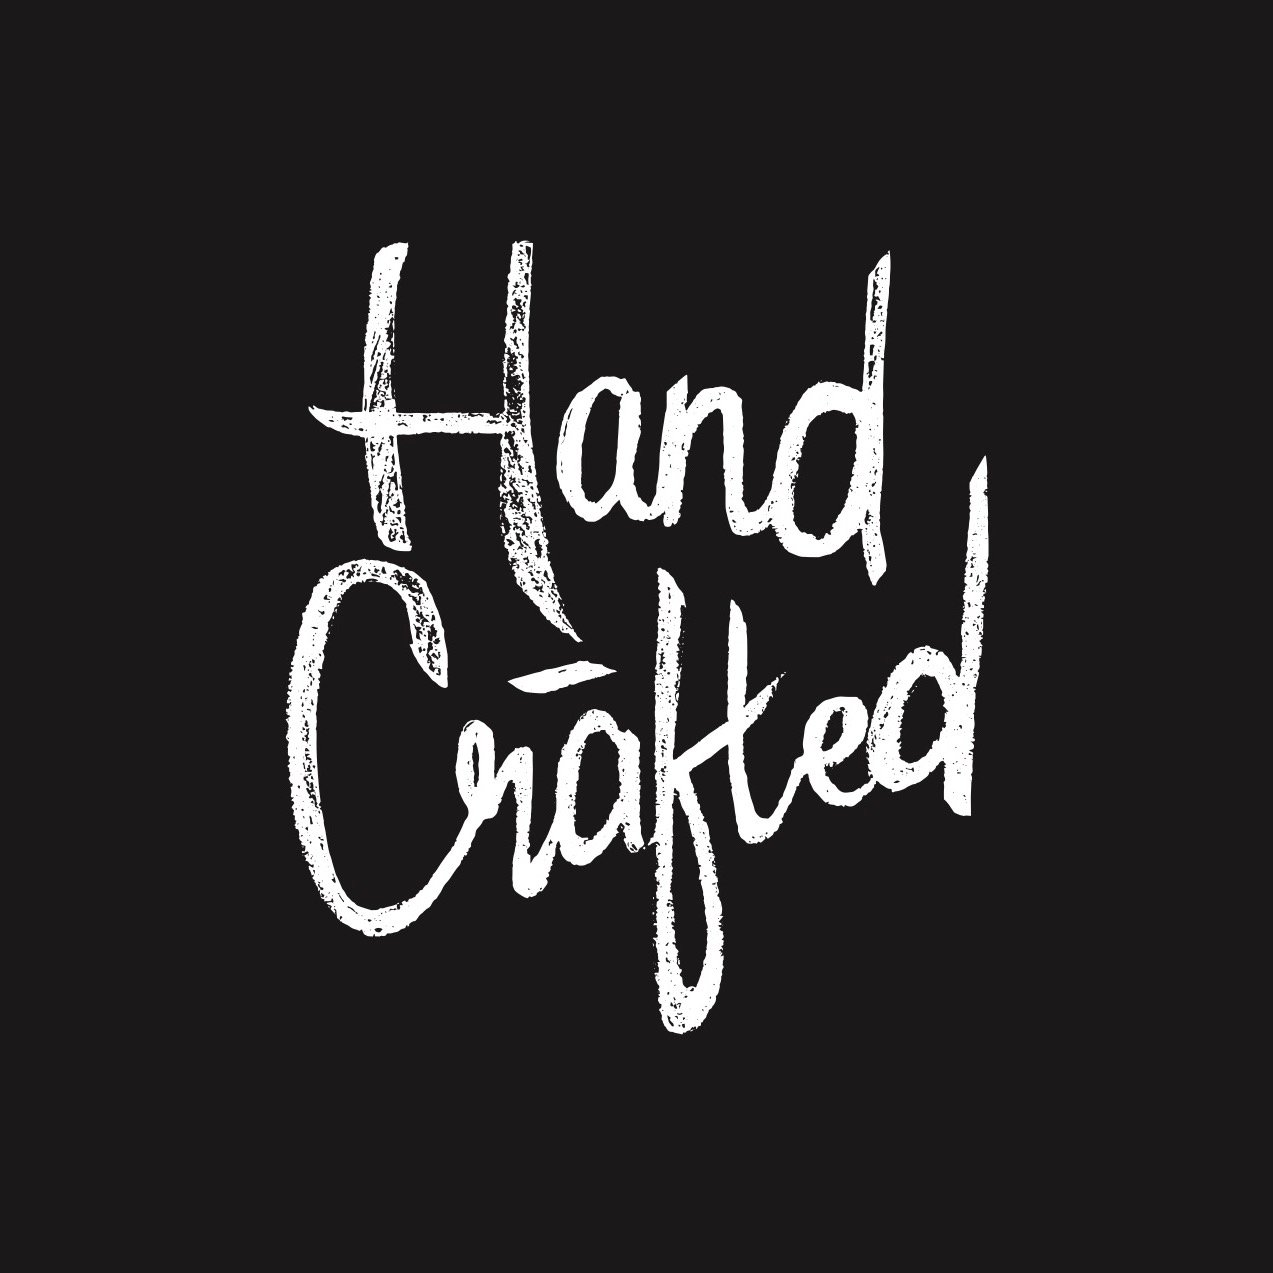 hand crafted stories handcrafted 1 twitter